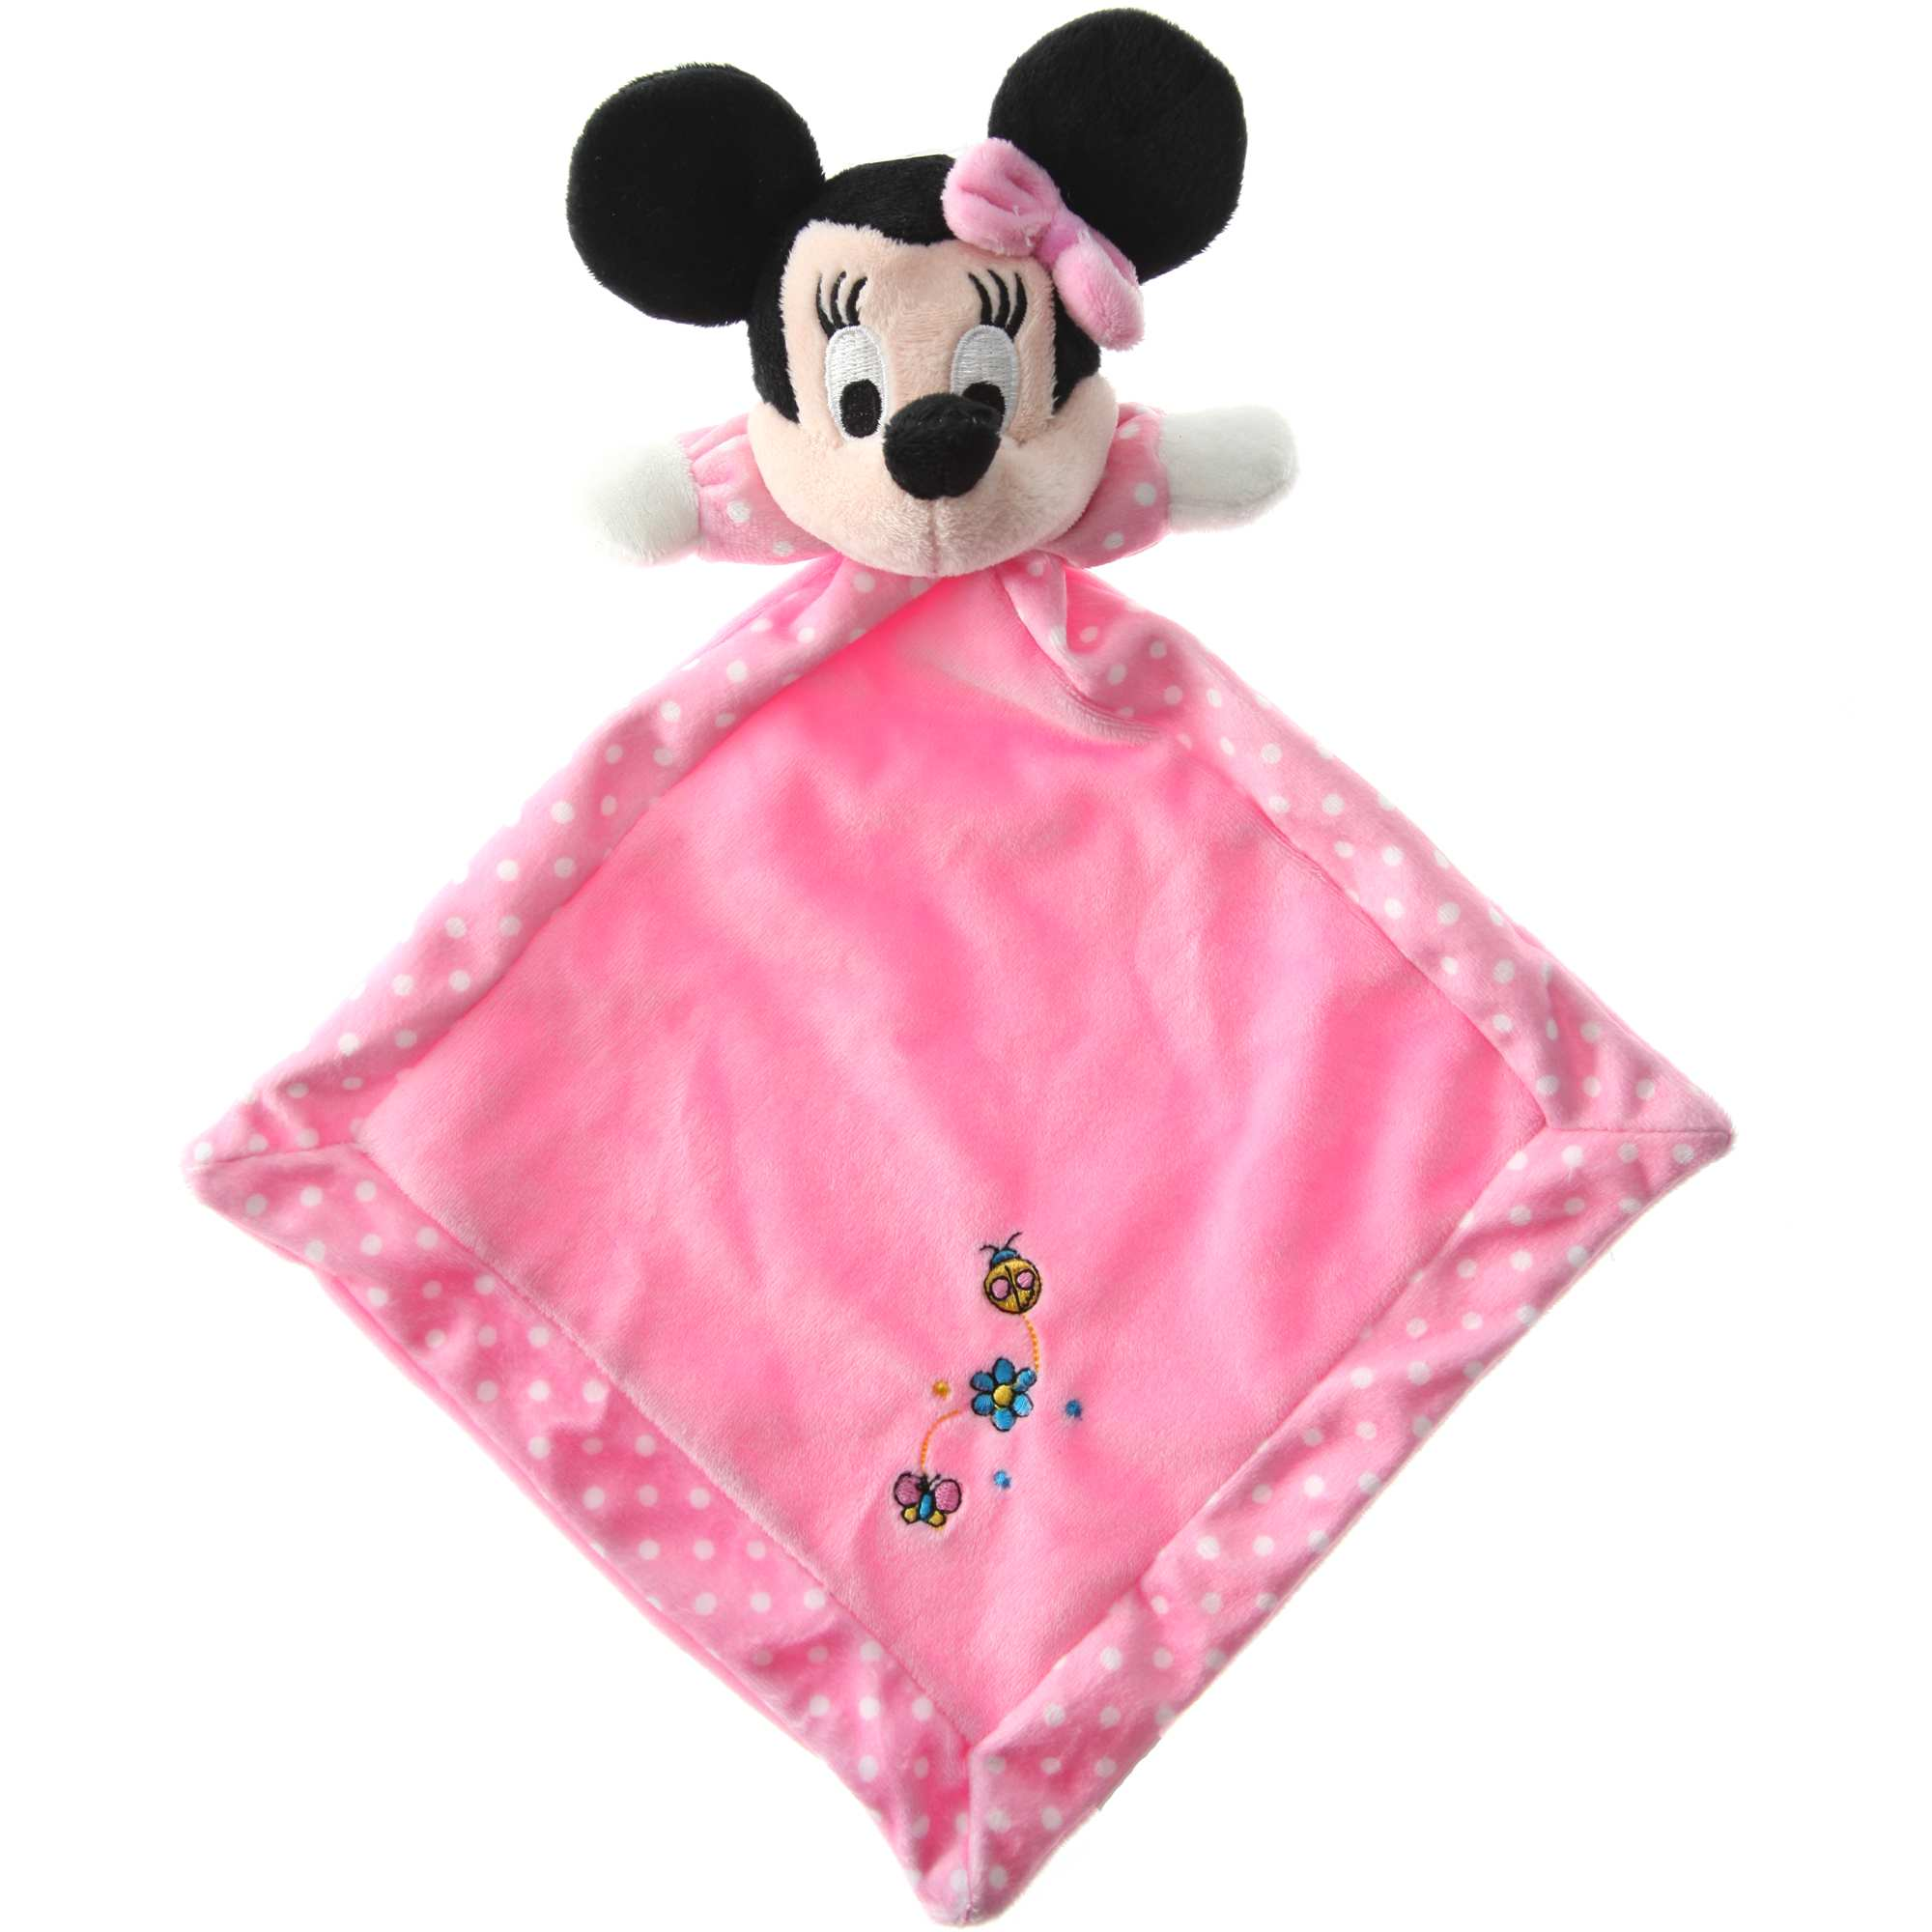 doudou 39 disney 39 ciniglia neonata minnie kiabi 8 00. Black Bedroom Furniture Sets. Home Design Ideas